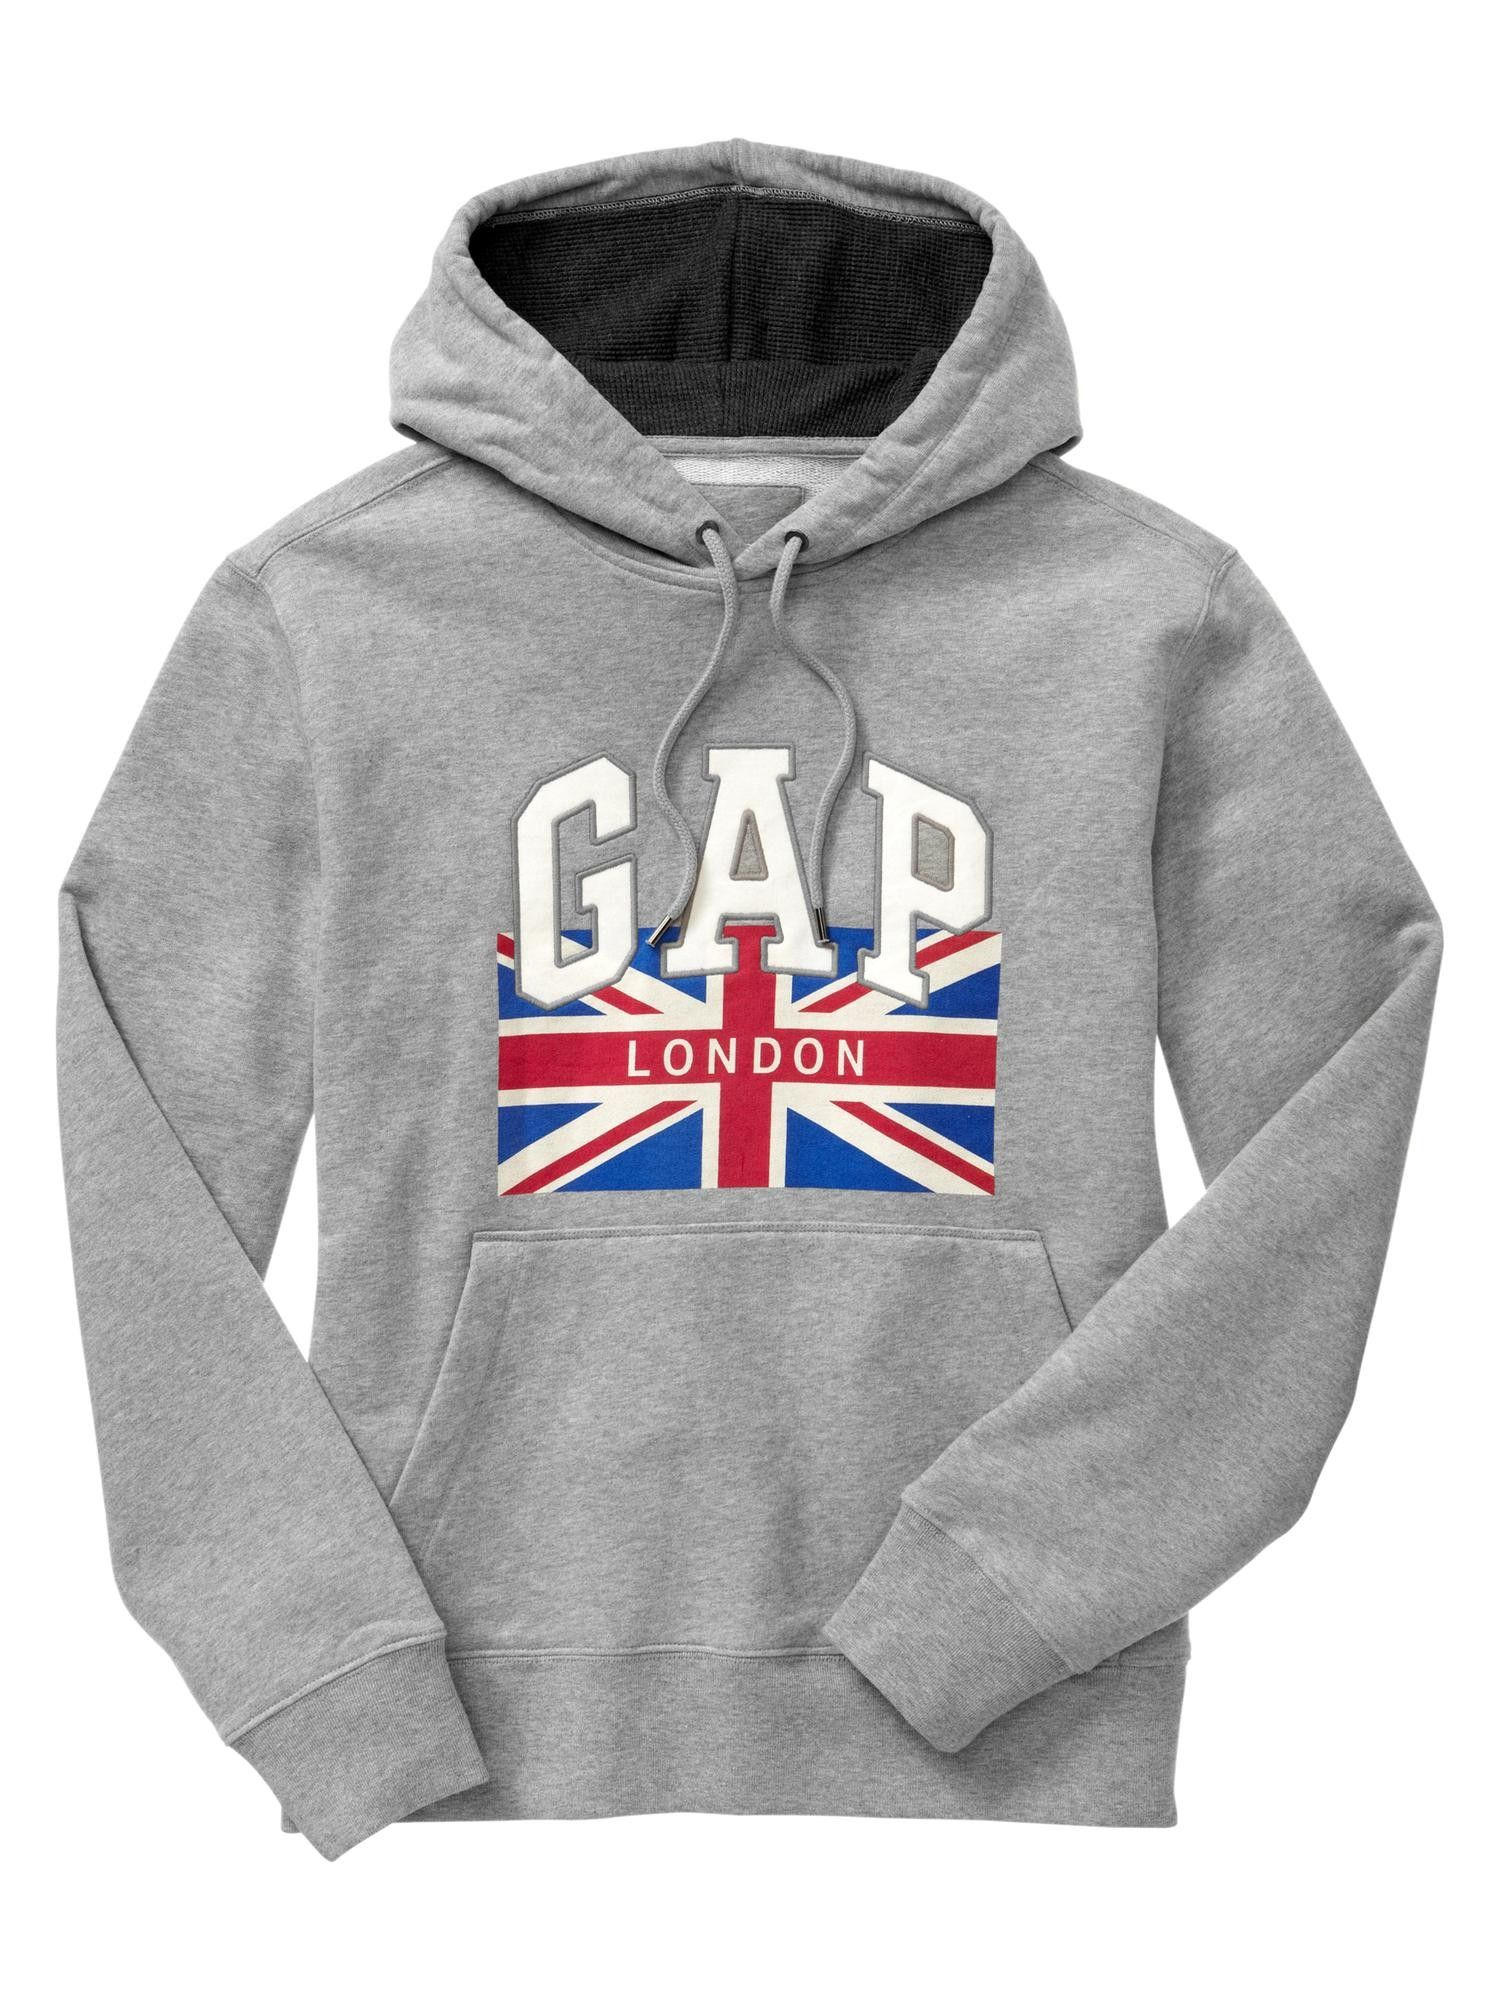 Union Jack Gap logolu kap  onlu sweatshirt | Gap | Pinterest ...